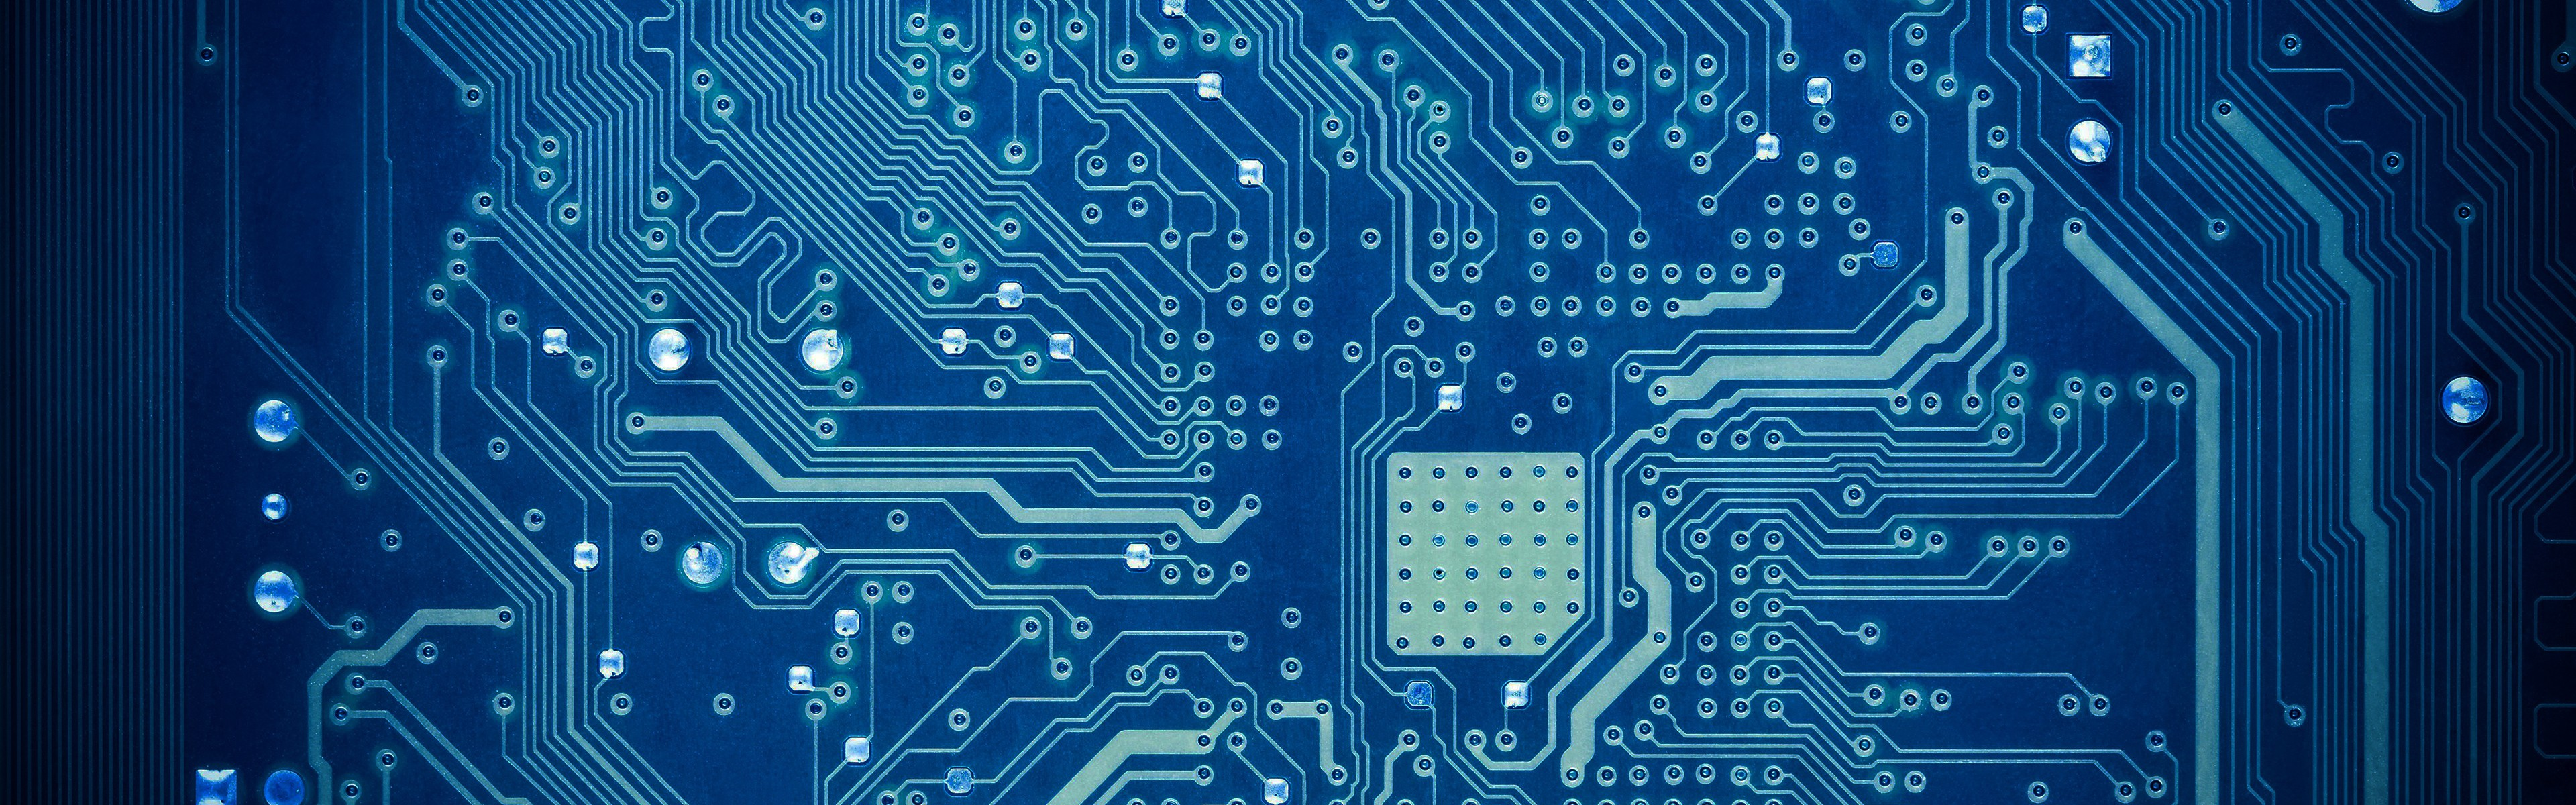 technology, multiple display, circuit boards - wallpaper #160784 ...